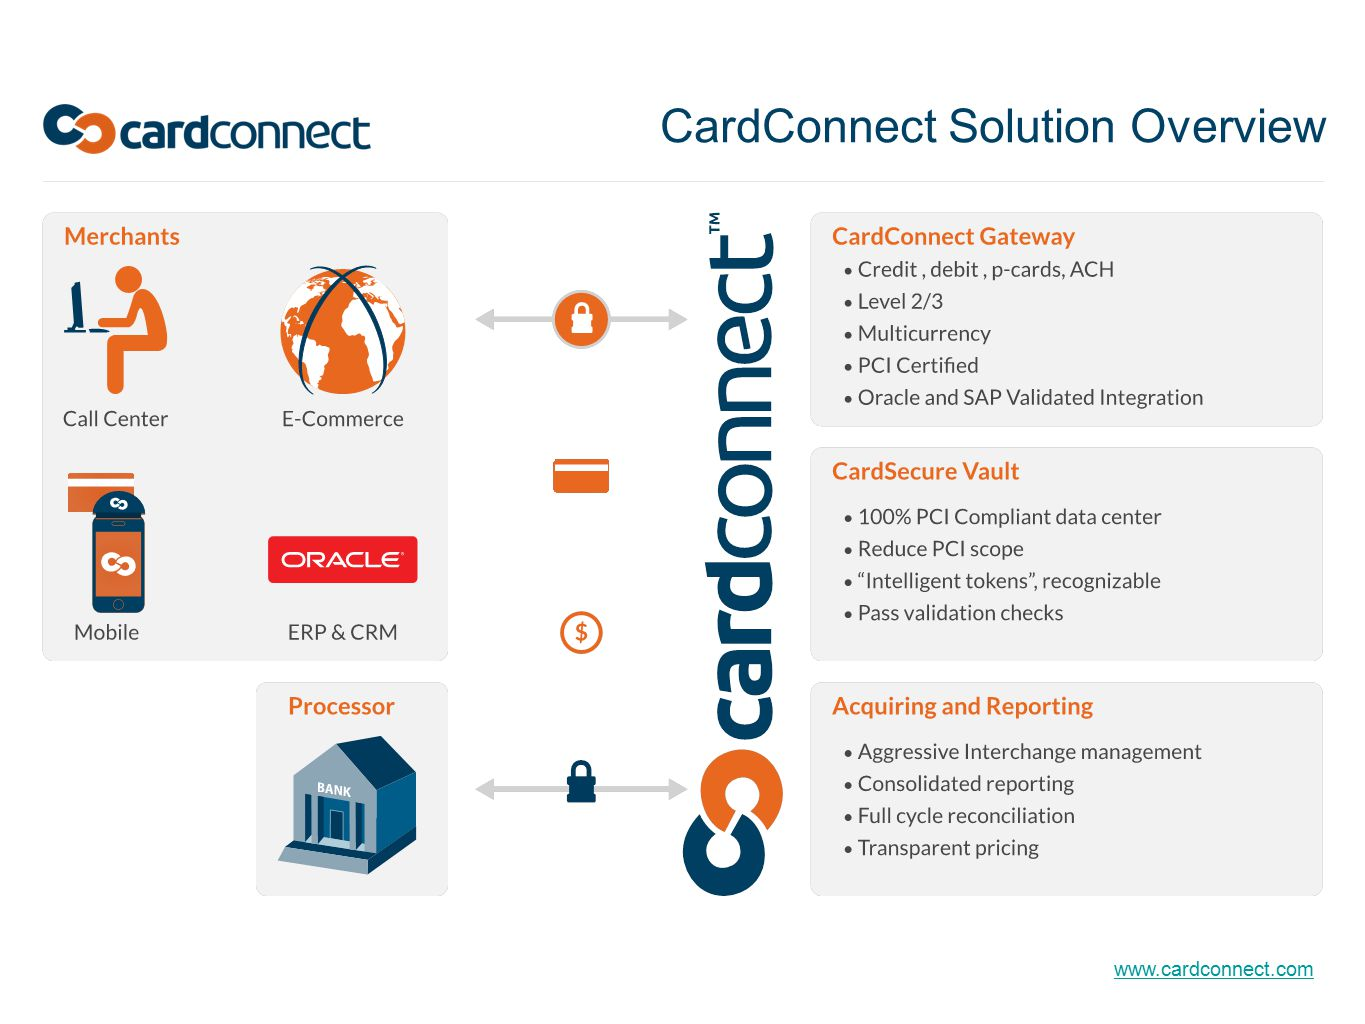 www.cardconnect.com CardConnect Solution Overview